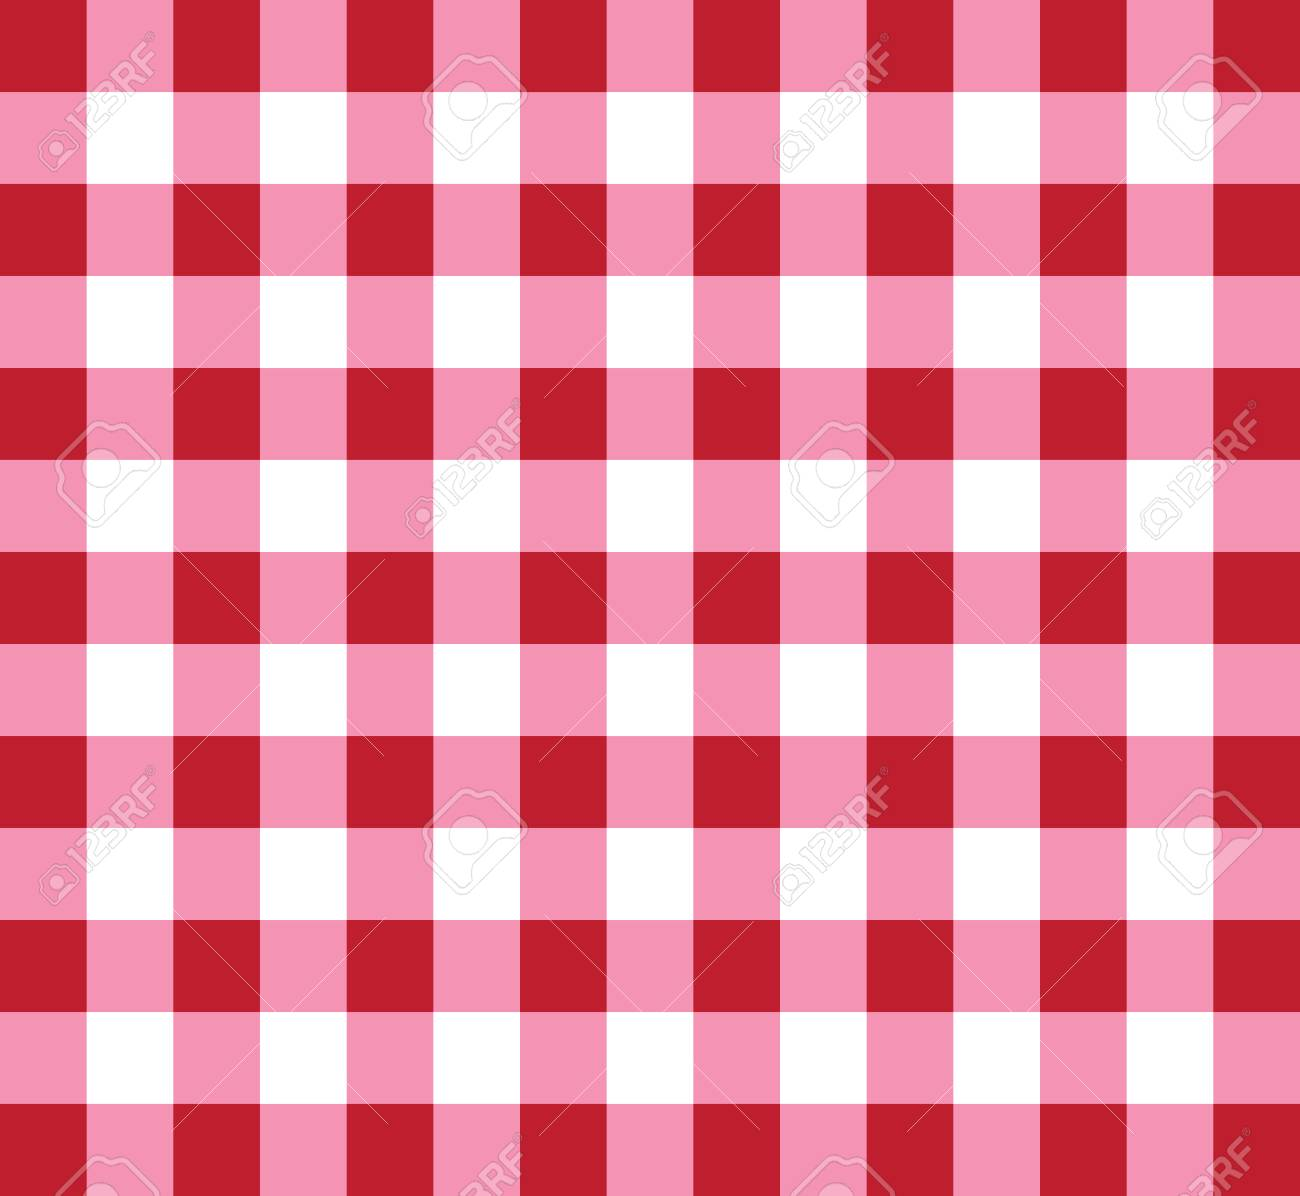 Picnic Checkered Tablecloth Pattern Red And White Stock Vector   85528238